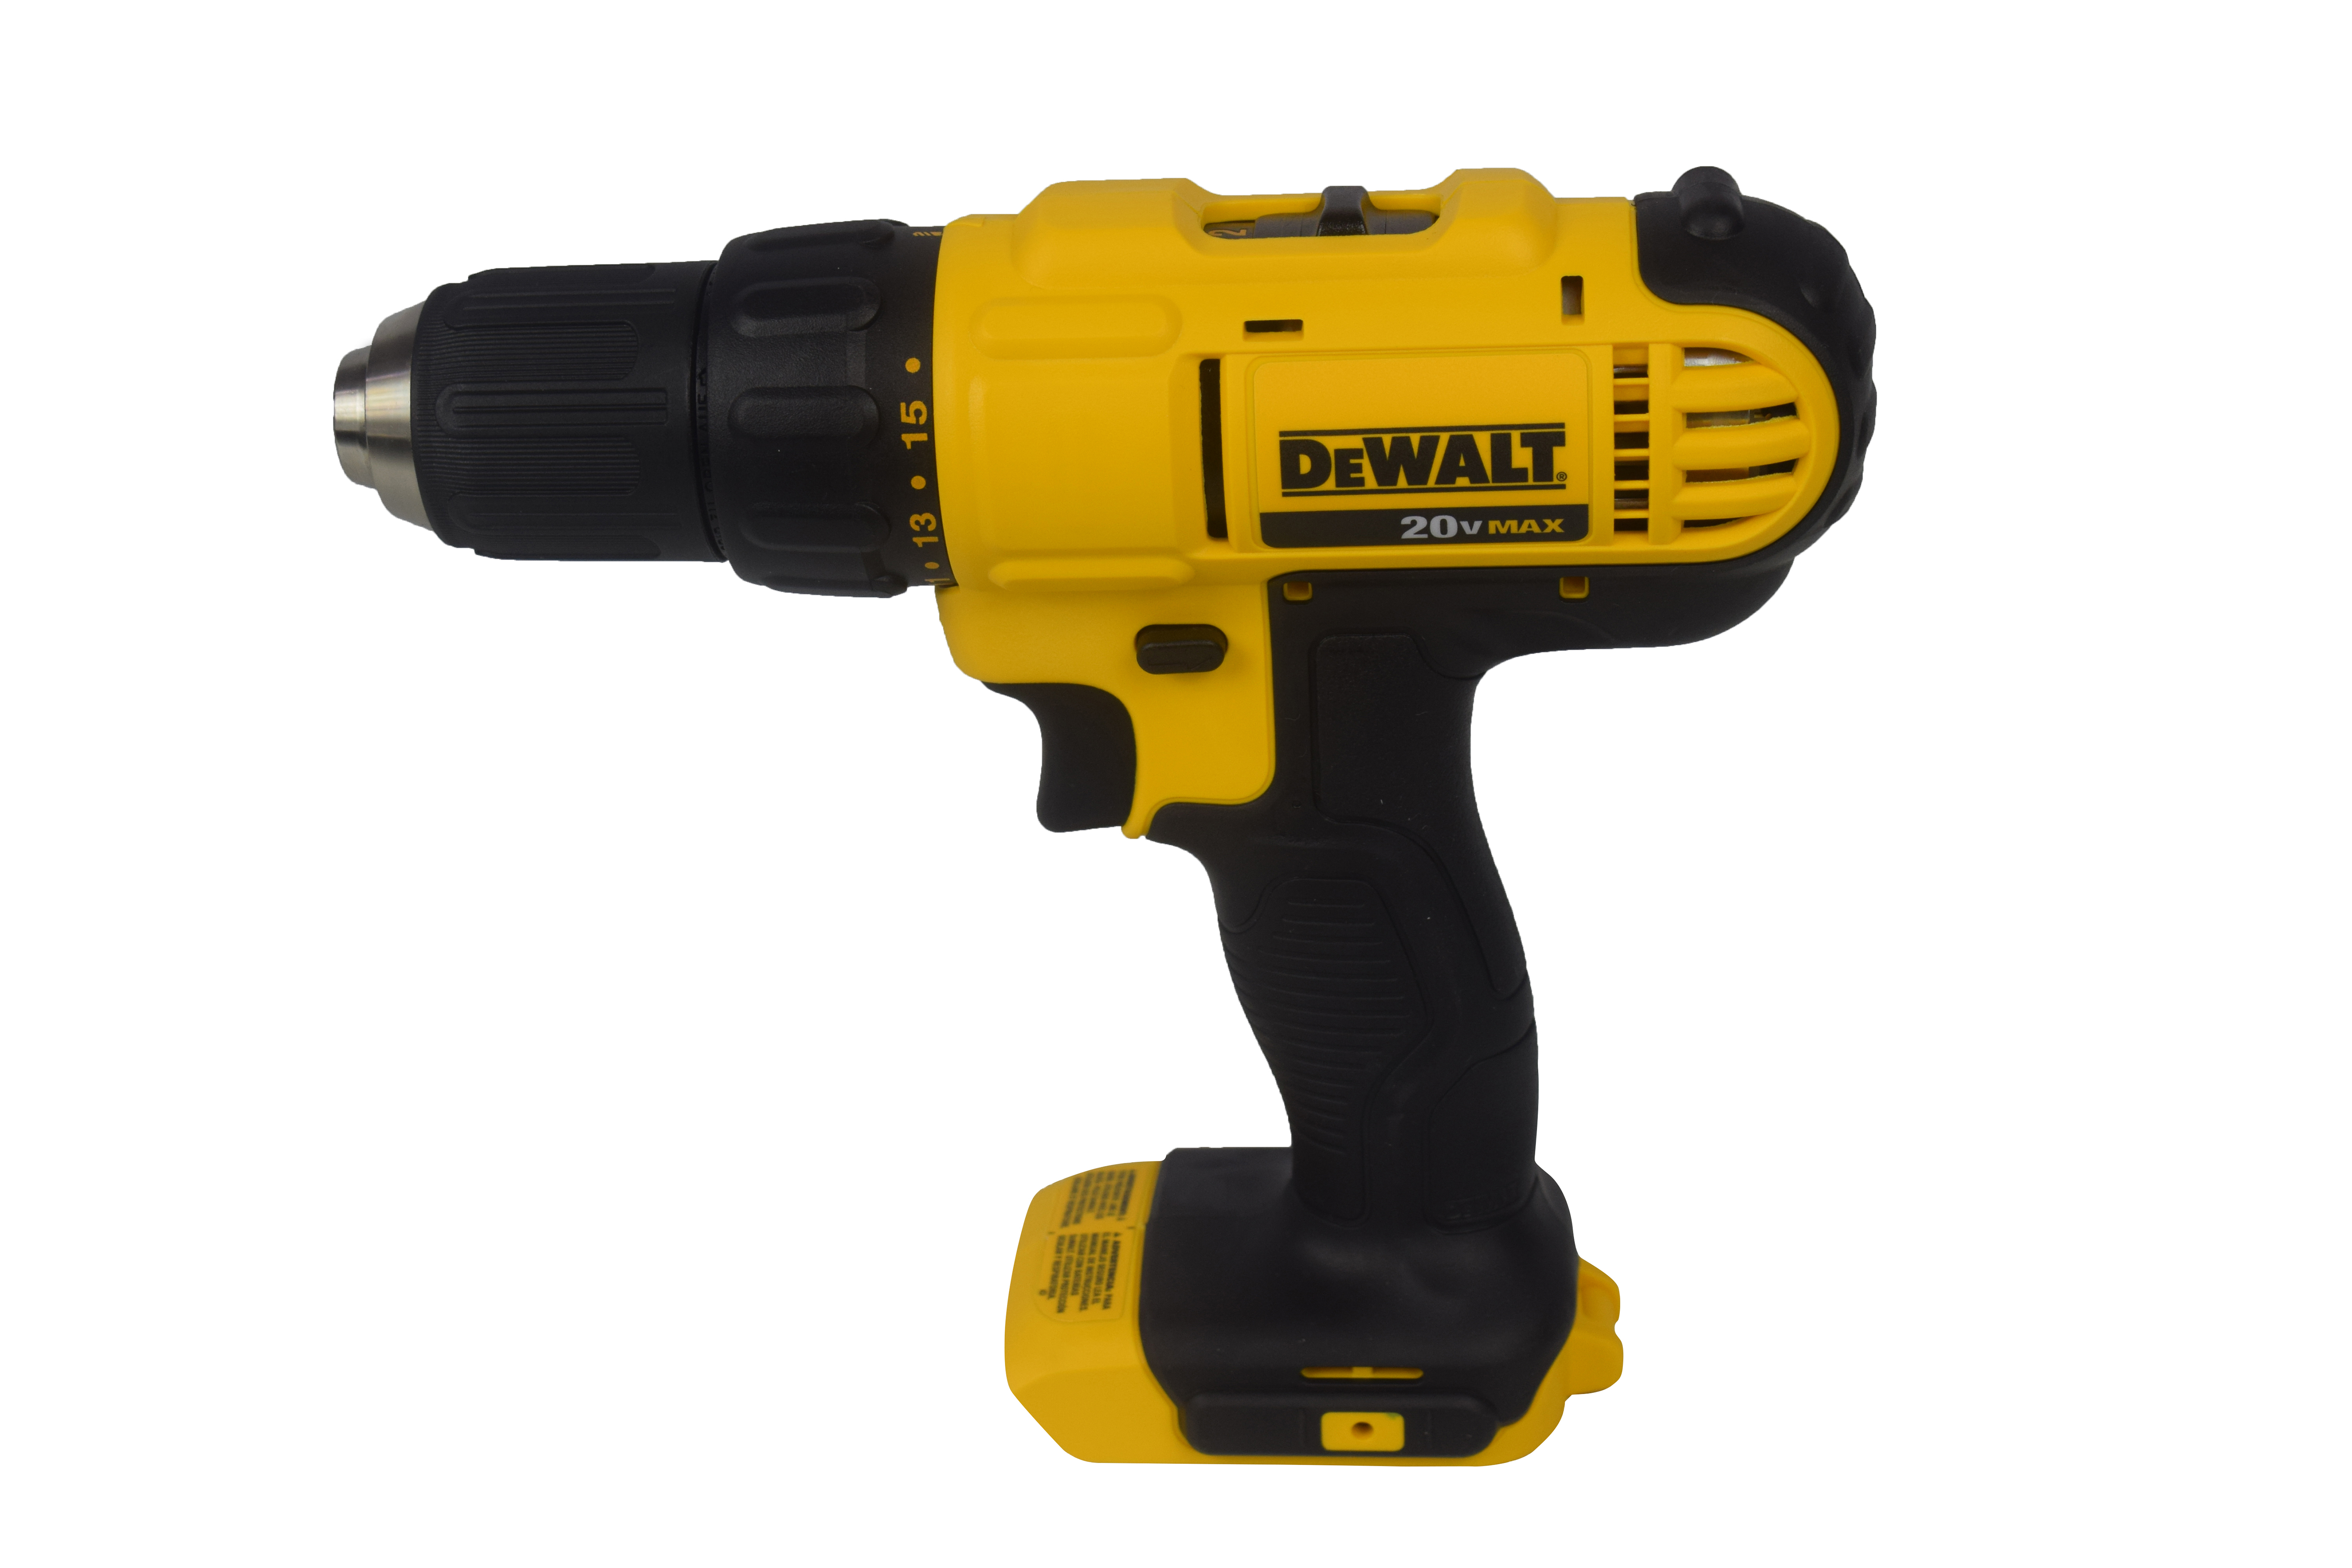 Dewalt-DCD771B-20V-1-2inch-Lithium-Ion-Cordless-Compact-Drill-Driver-image-1